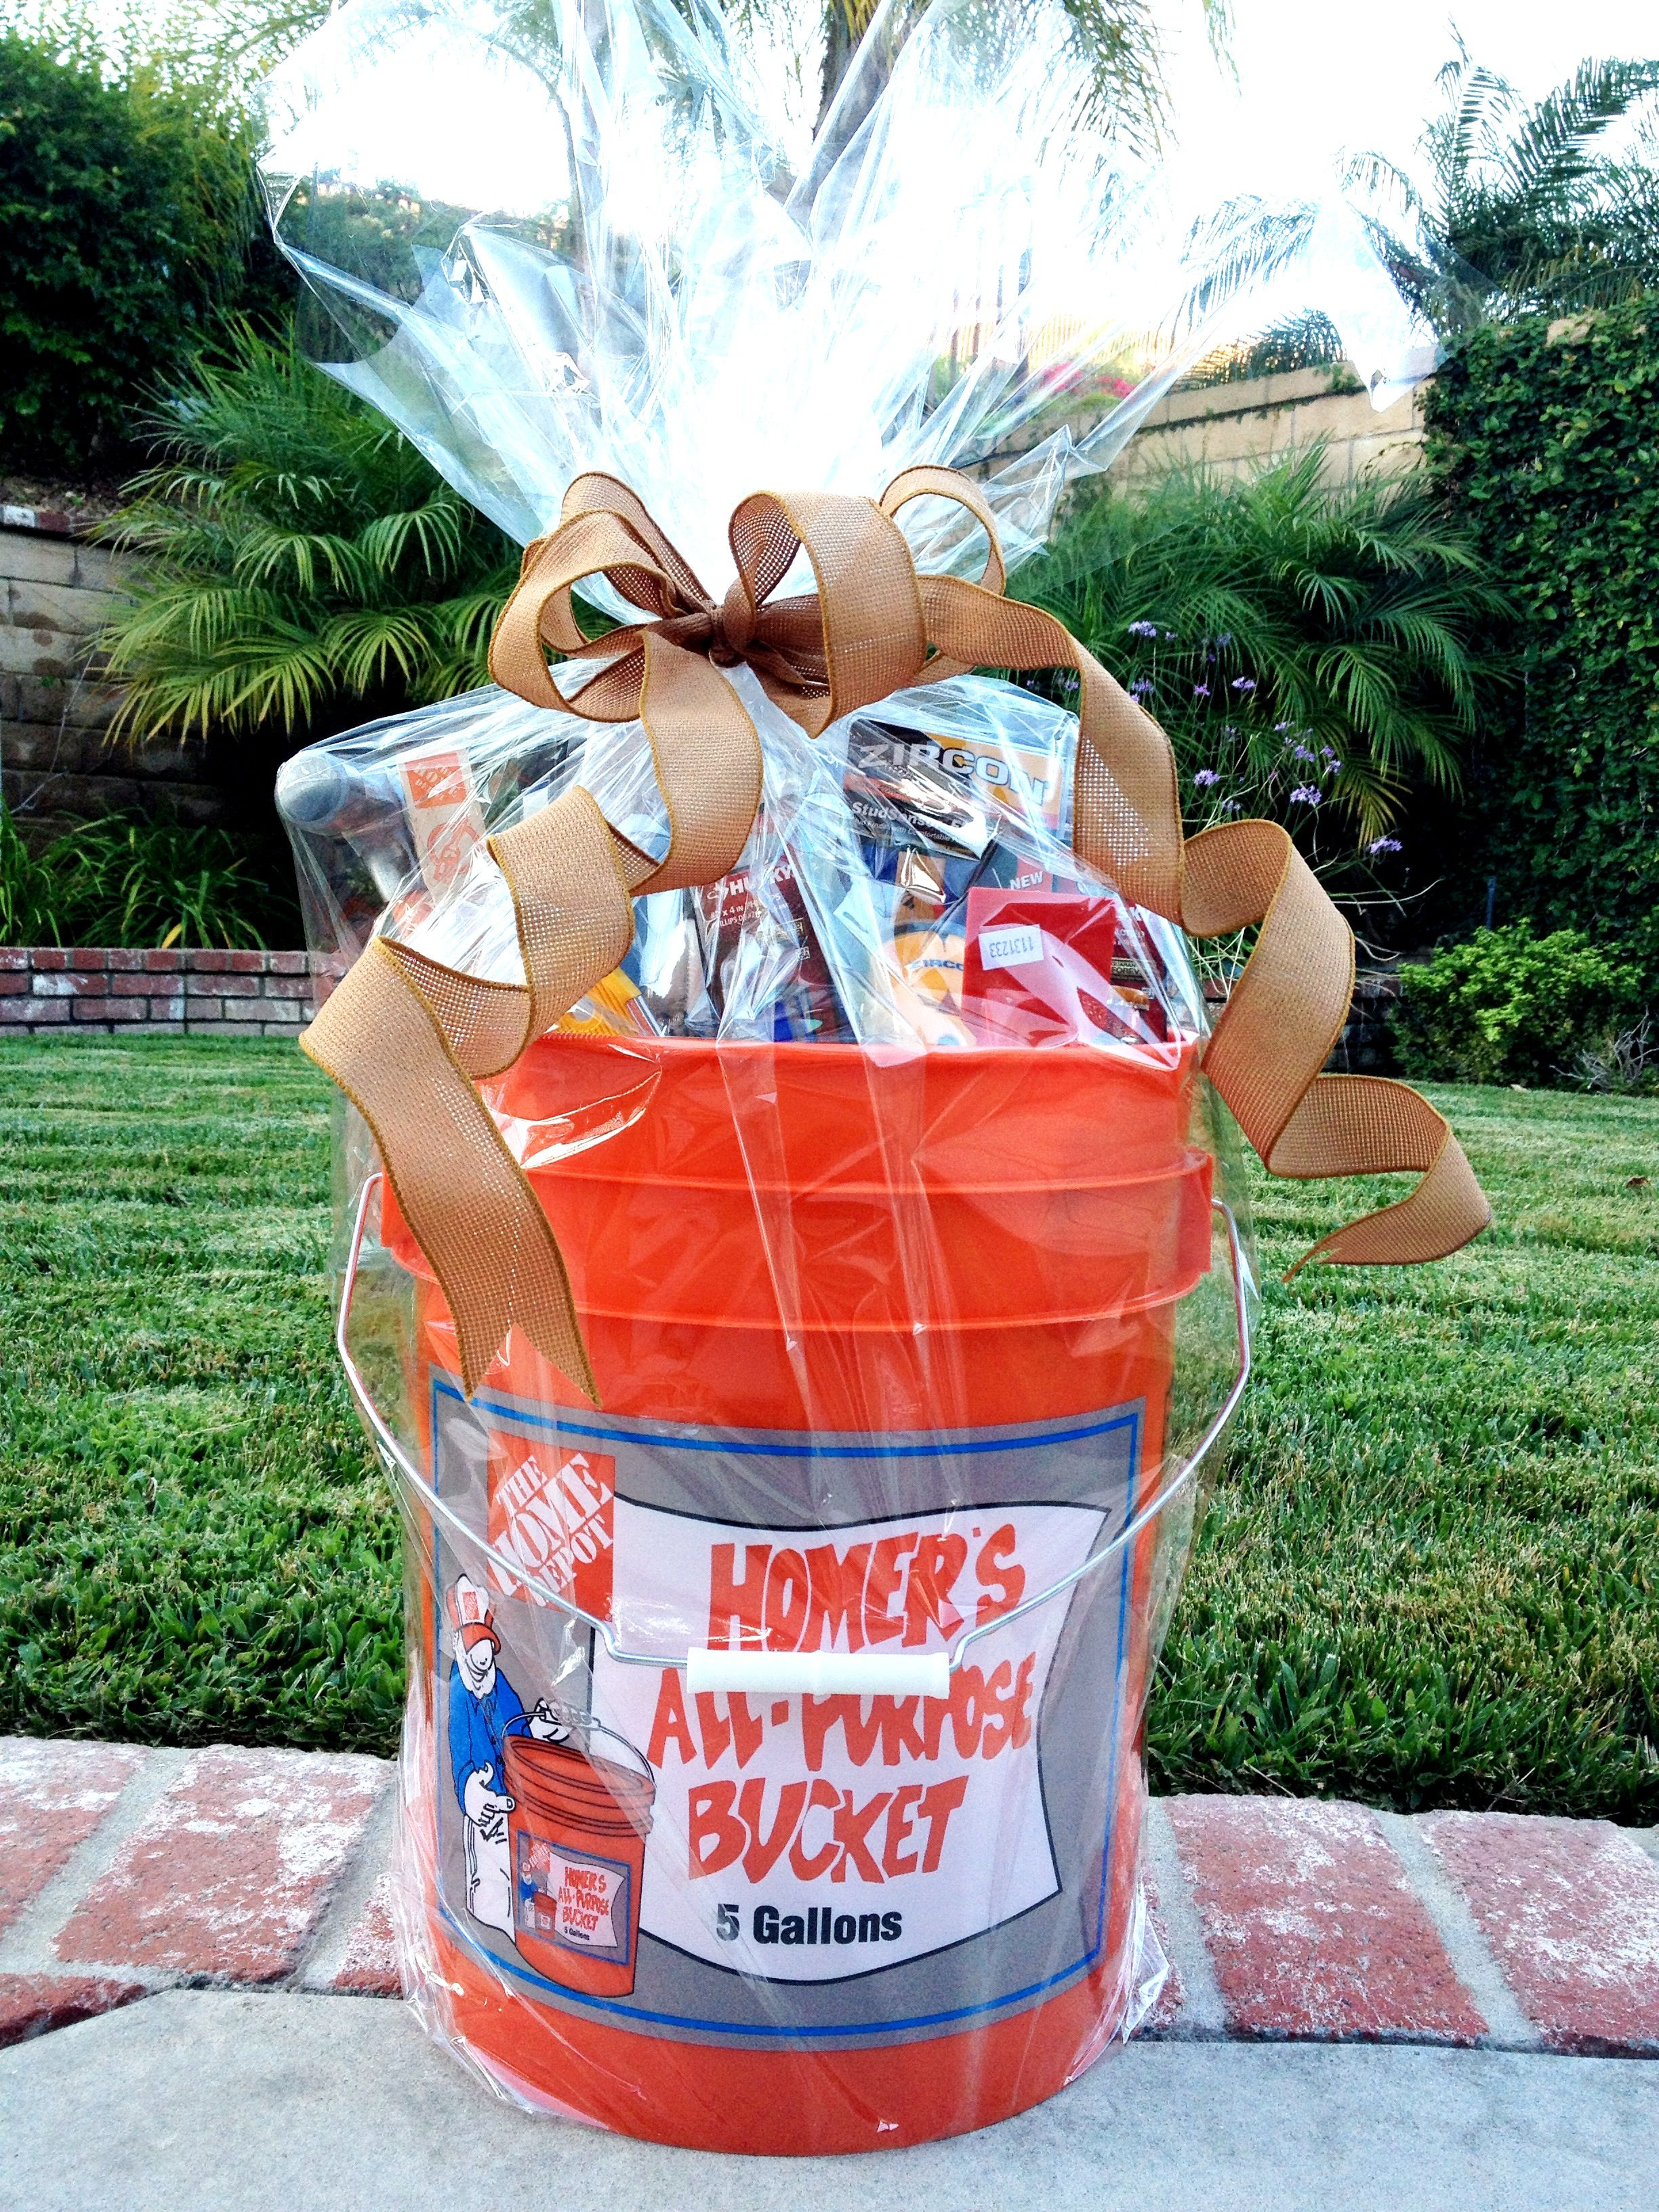 House Warming Gift Home Depot 5 Gallon Bucket Level Hammer Stud Finder Phillips And Fl In 2020 House Warming Gifts Housewarming Gift Baskets Bucket Gifts